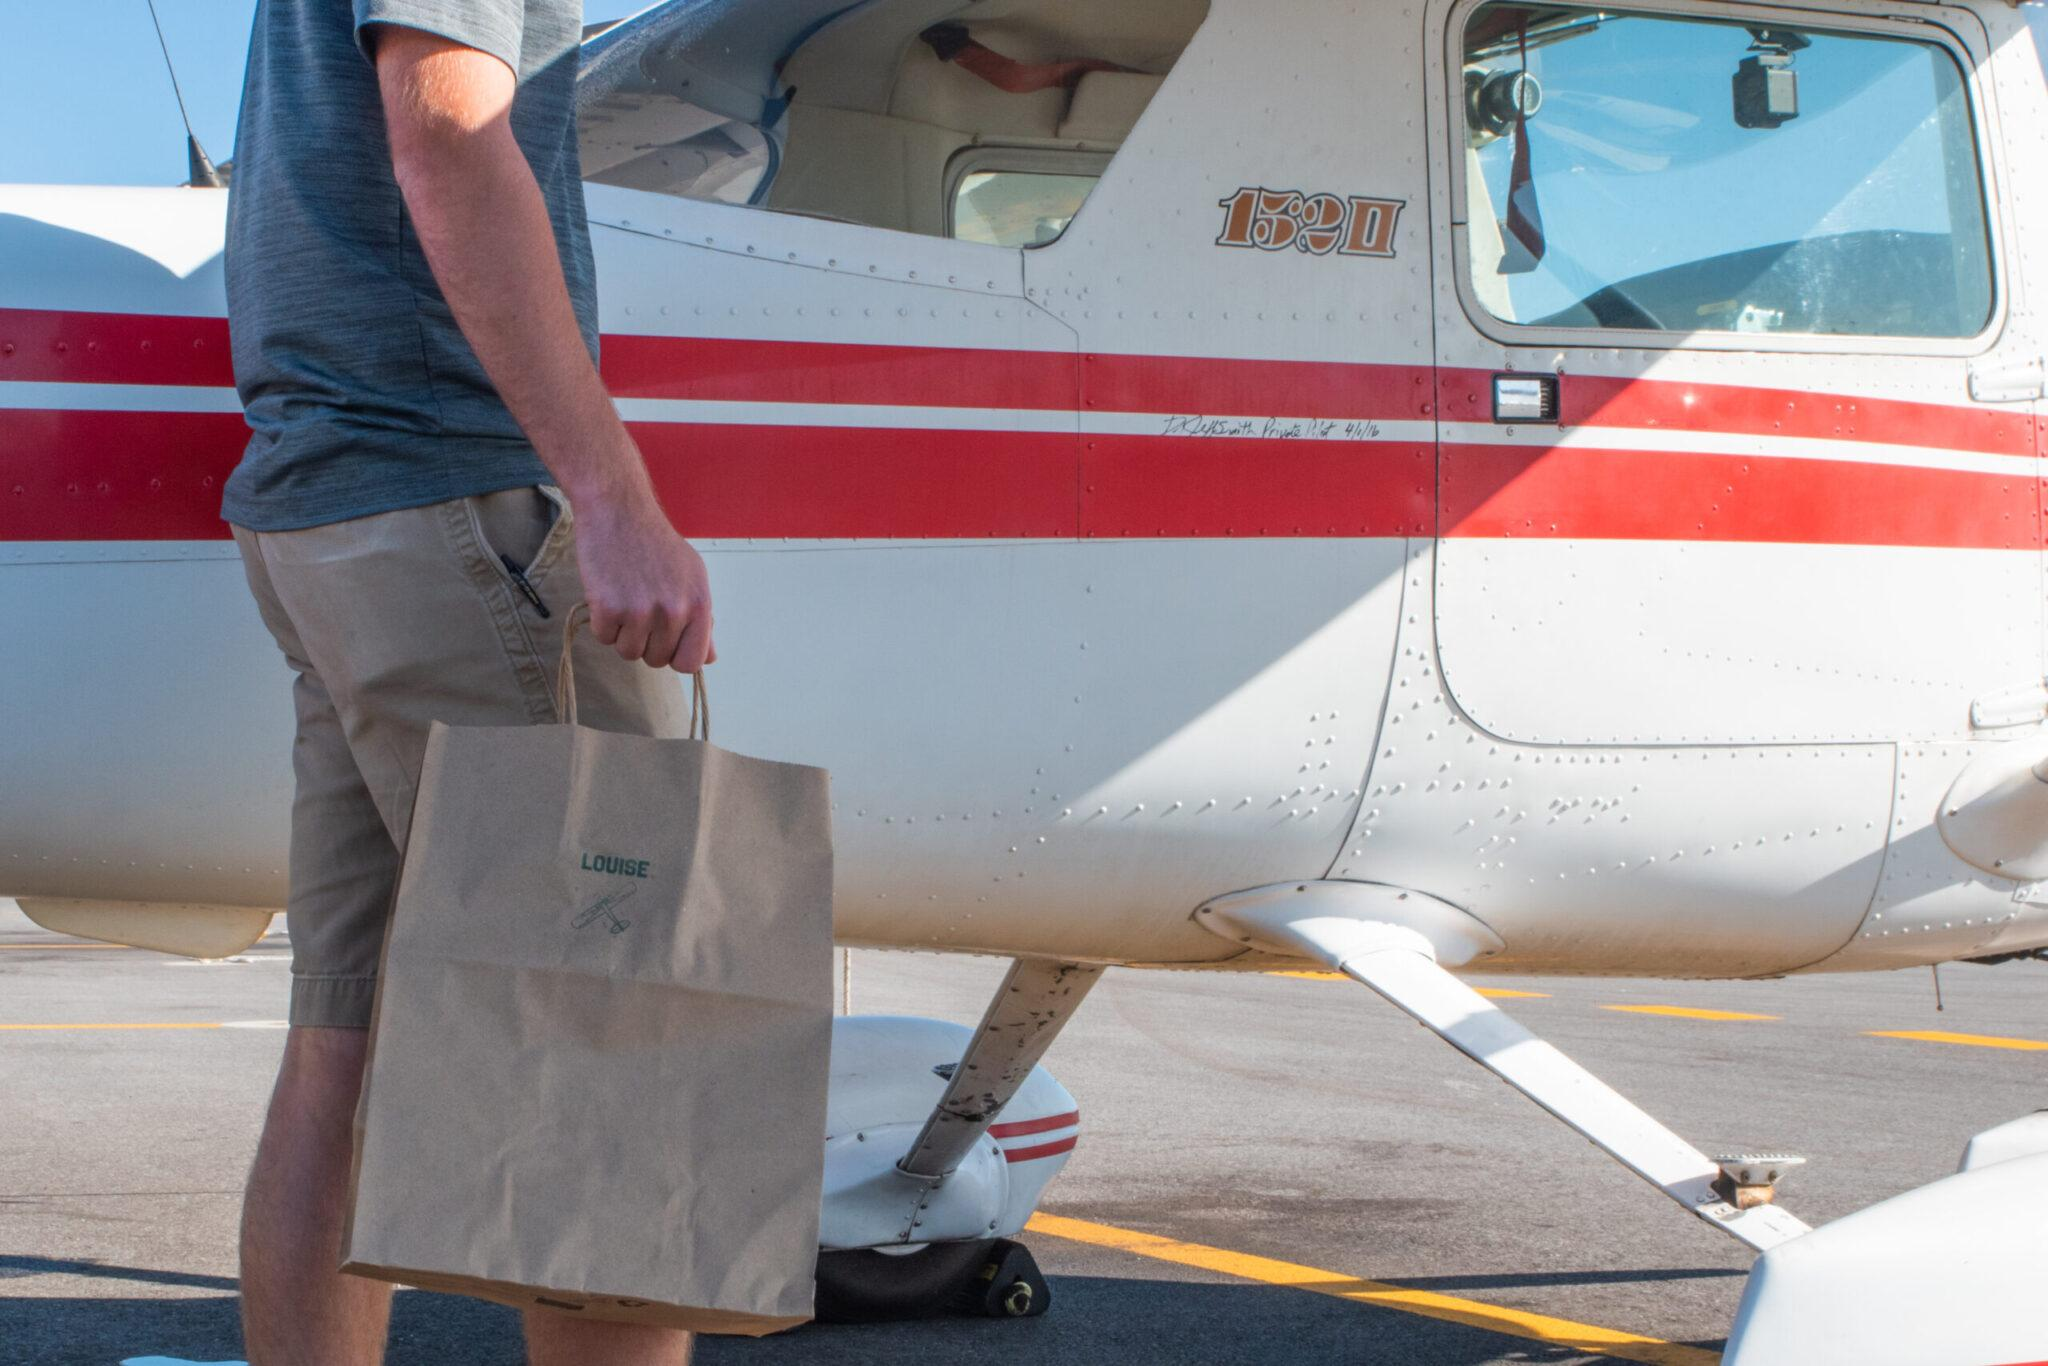 Man carrying paper bag to propeller plane